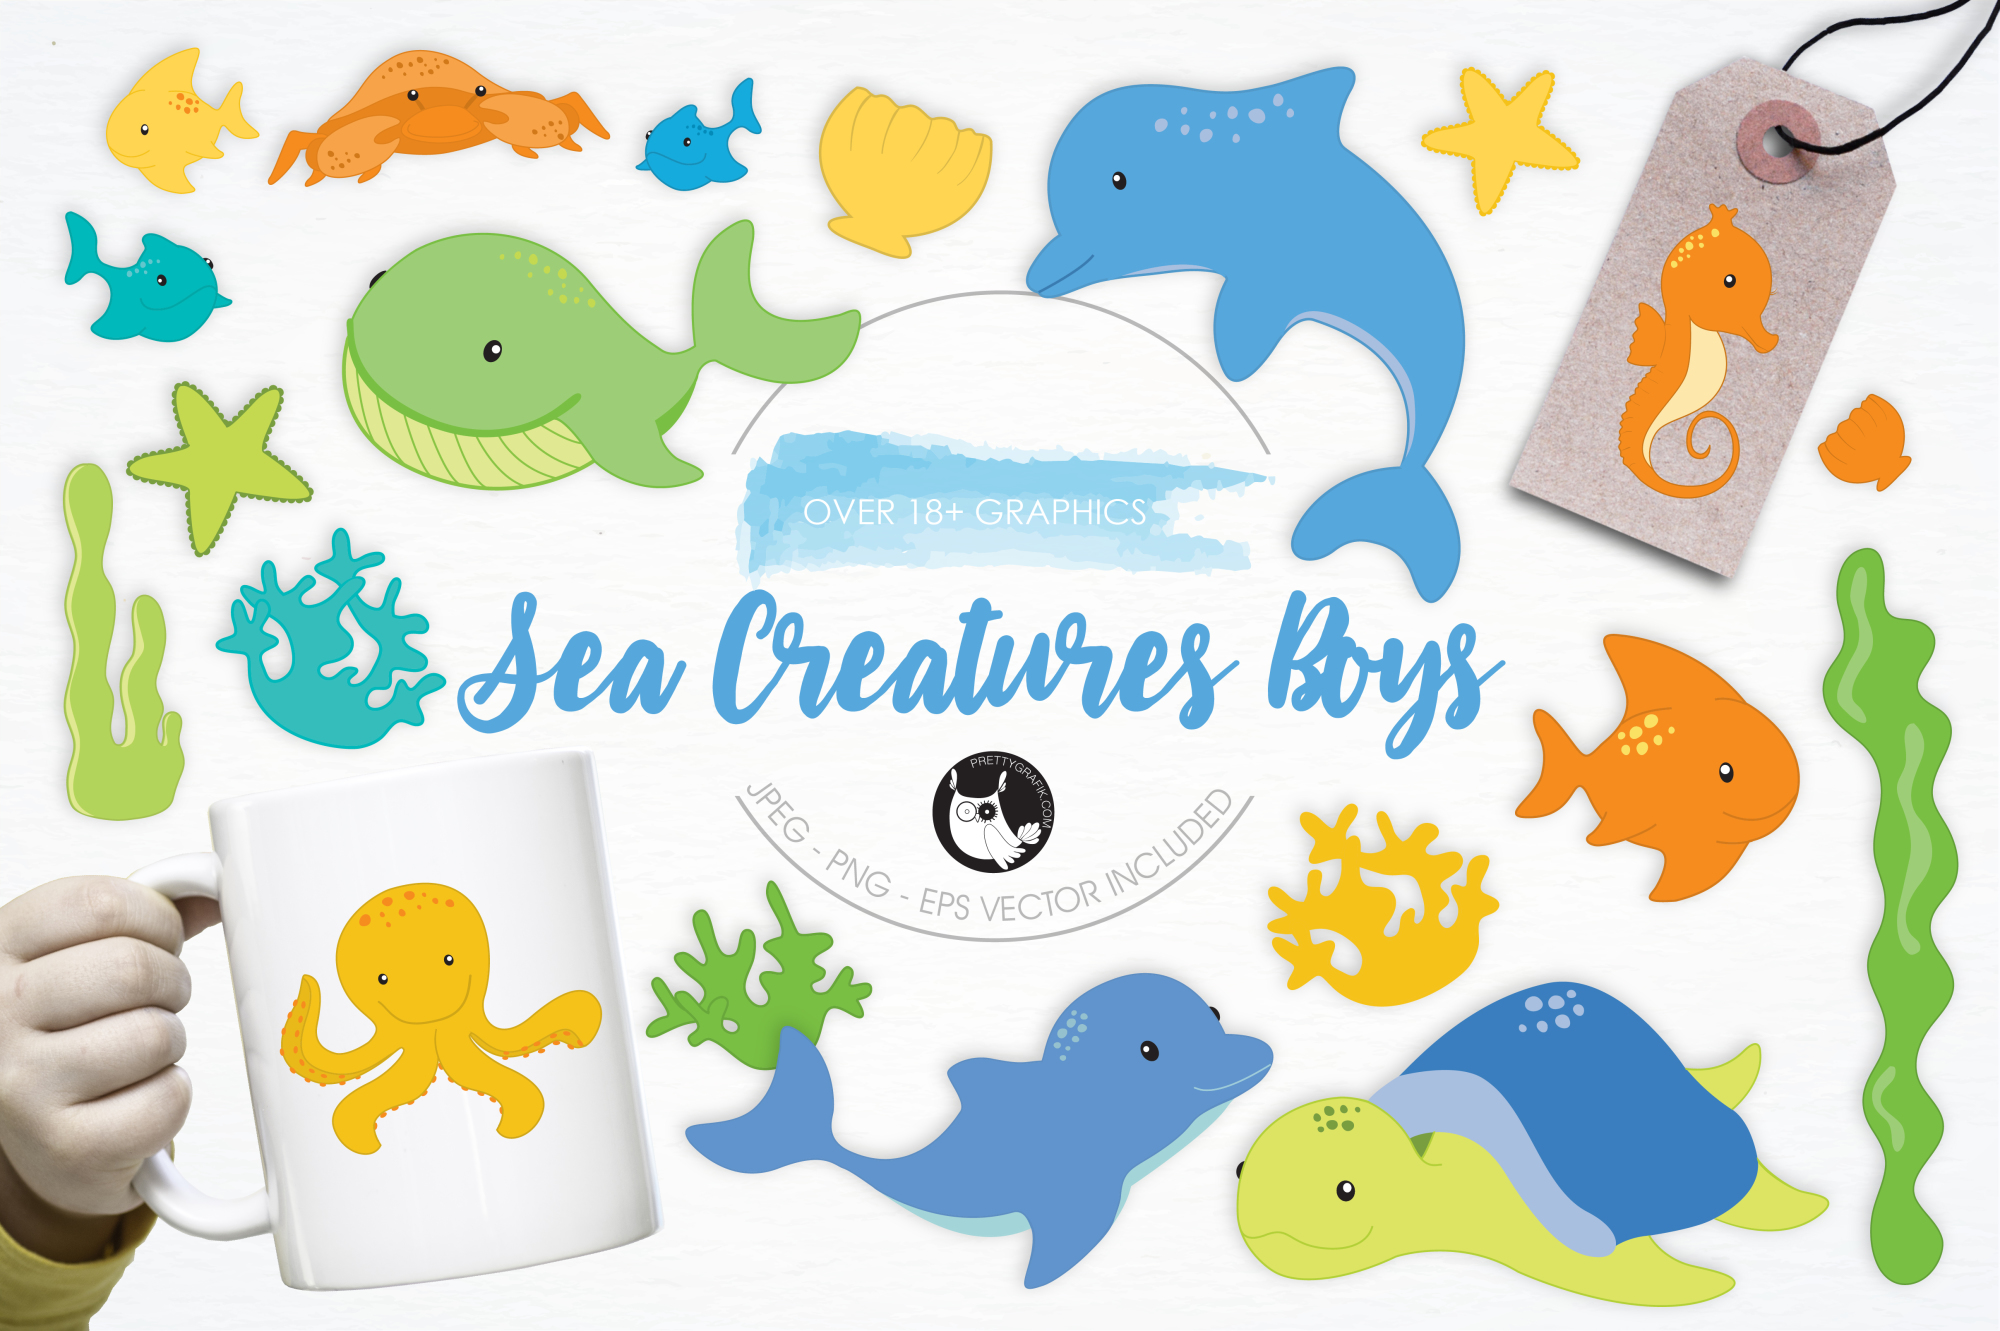 Sea Creatures Boys graphics and illustrations example image 1